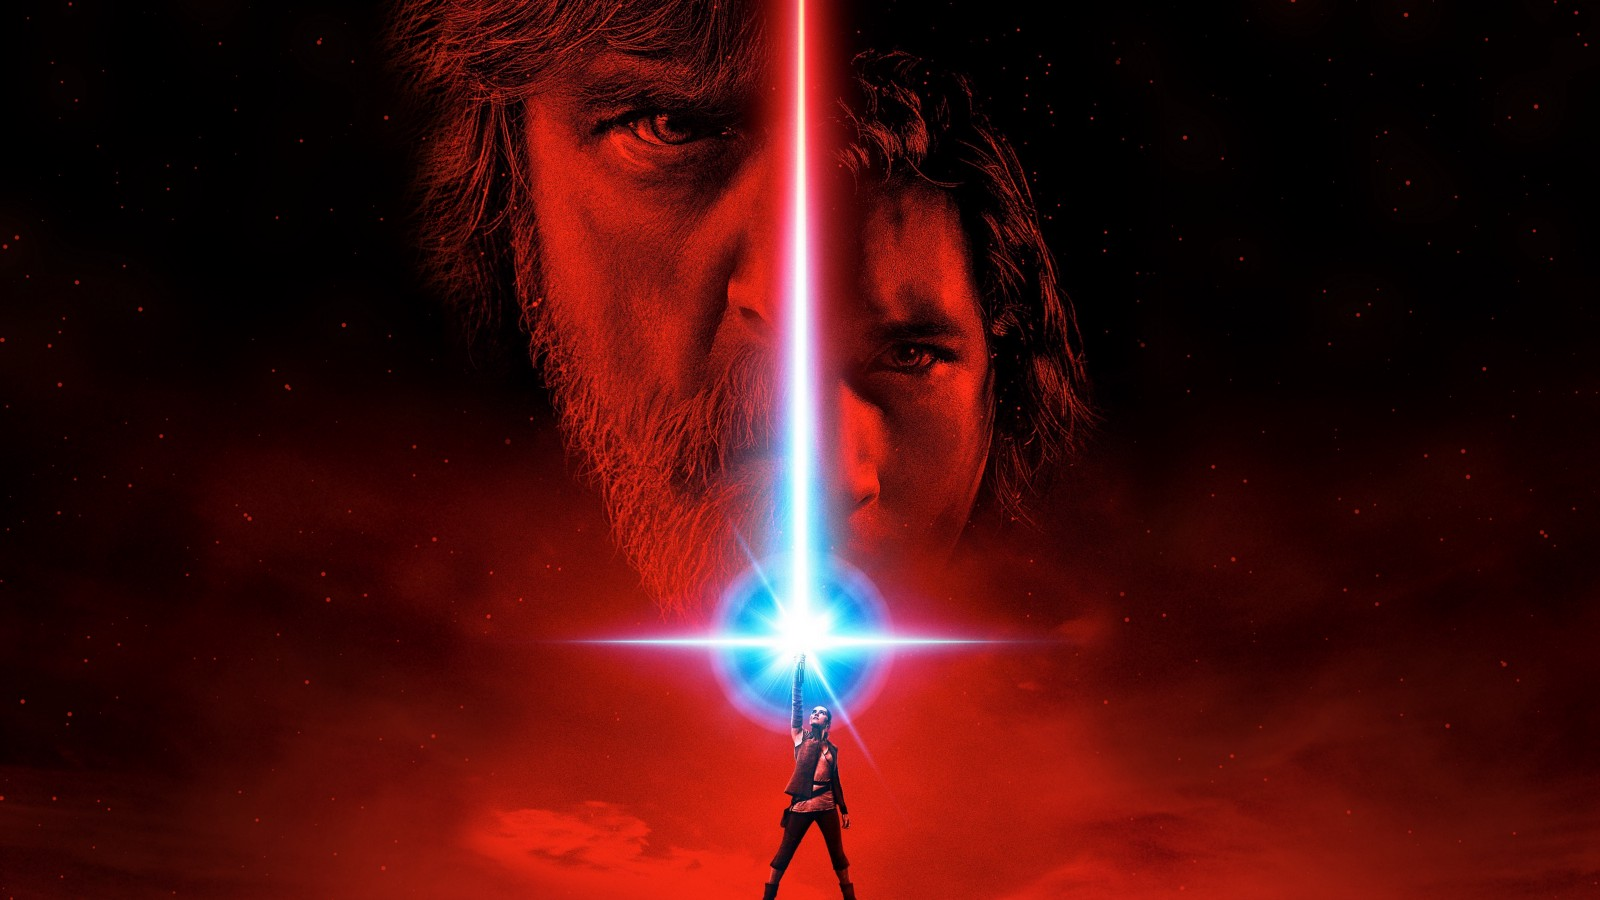 e06a45f23 This film is a big middle finger to anyone who grew up believing in Luke  Skywalker. Without any good reason